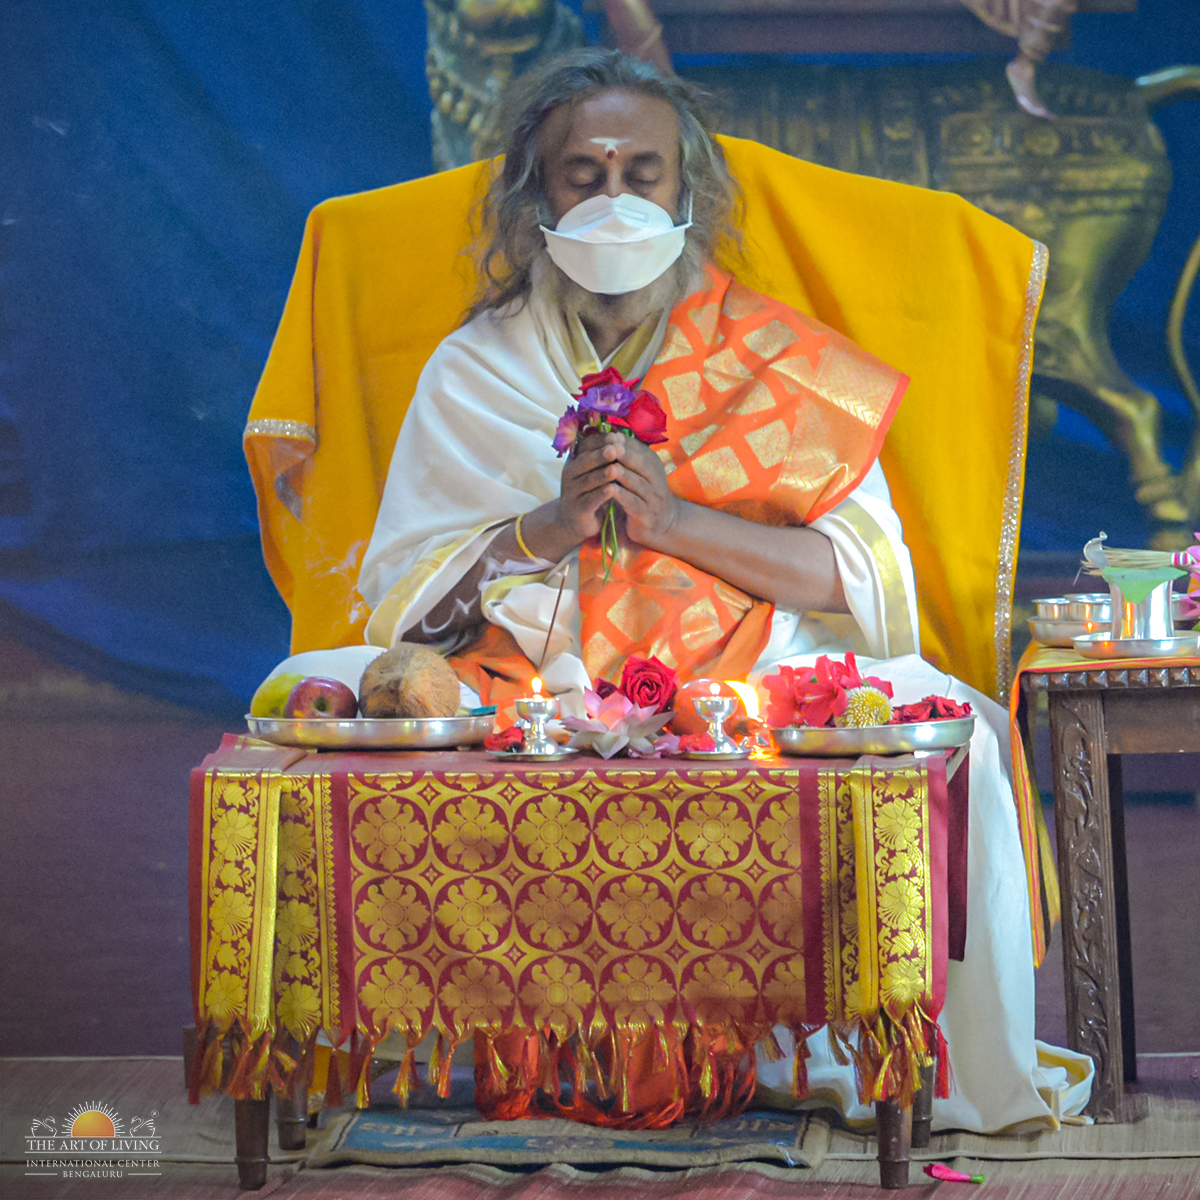 Devotion is in the air!  Embracing the wonderful moments captured from the Guru Puja performed as part of Rishi Homa earlier today - a traditional ceremony honouring the lineage of spiritual masters. #Navratri2020 https://t.co/fMQD0CwBcf